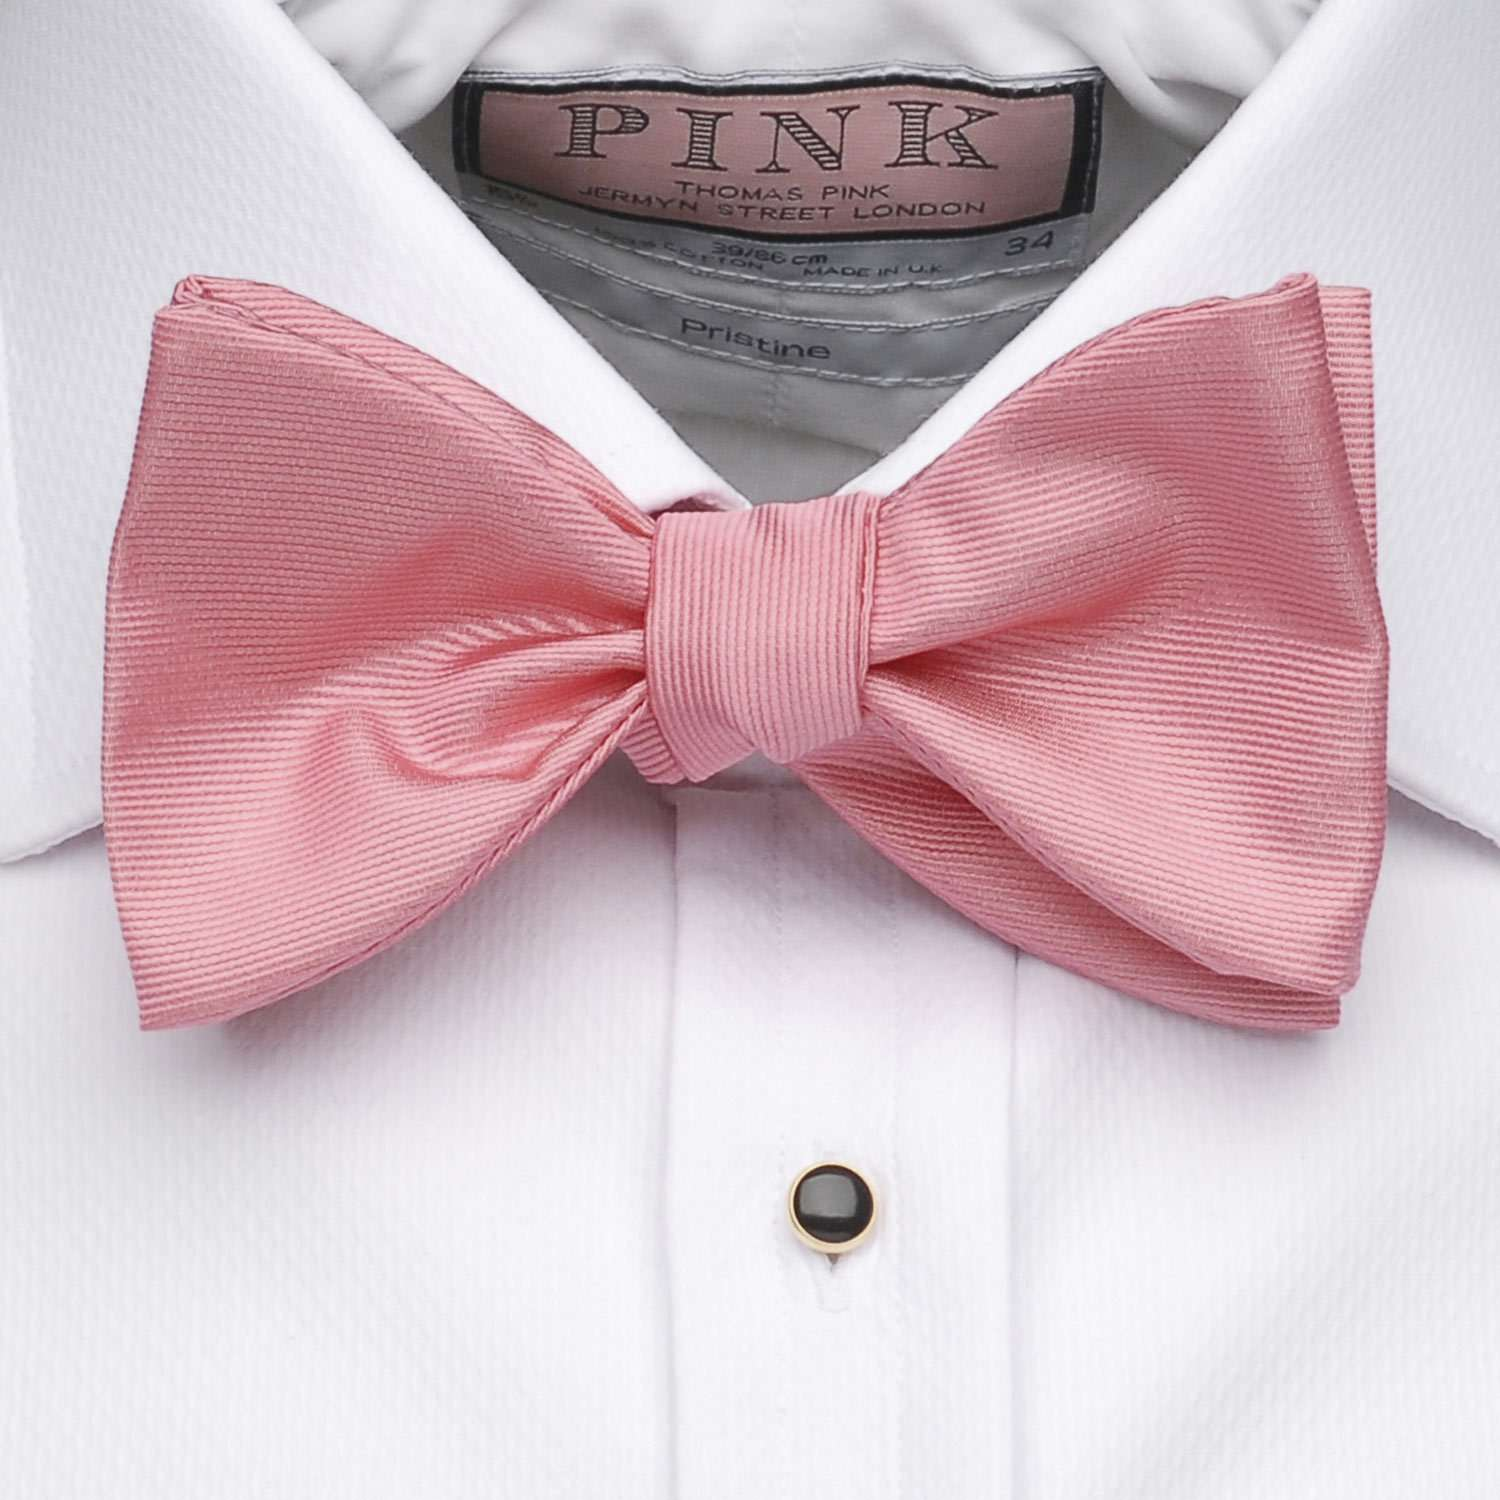 How to pink a wear bow tie foto